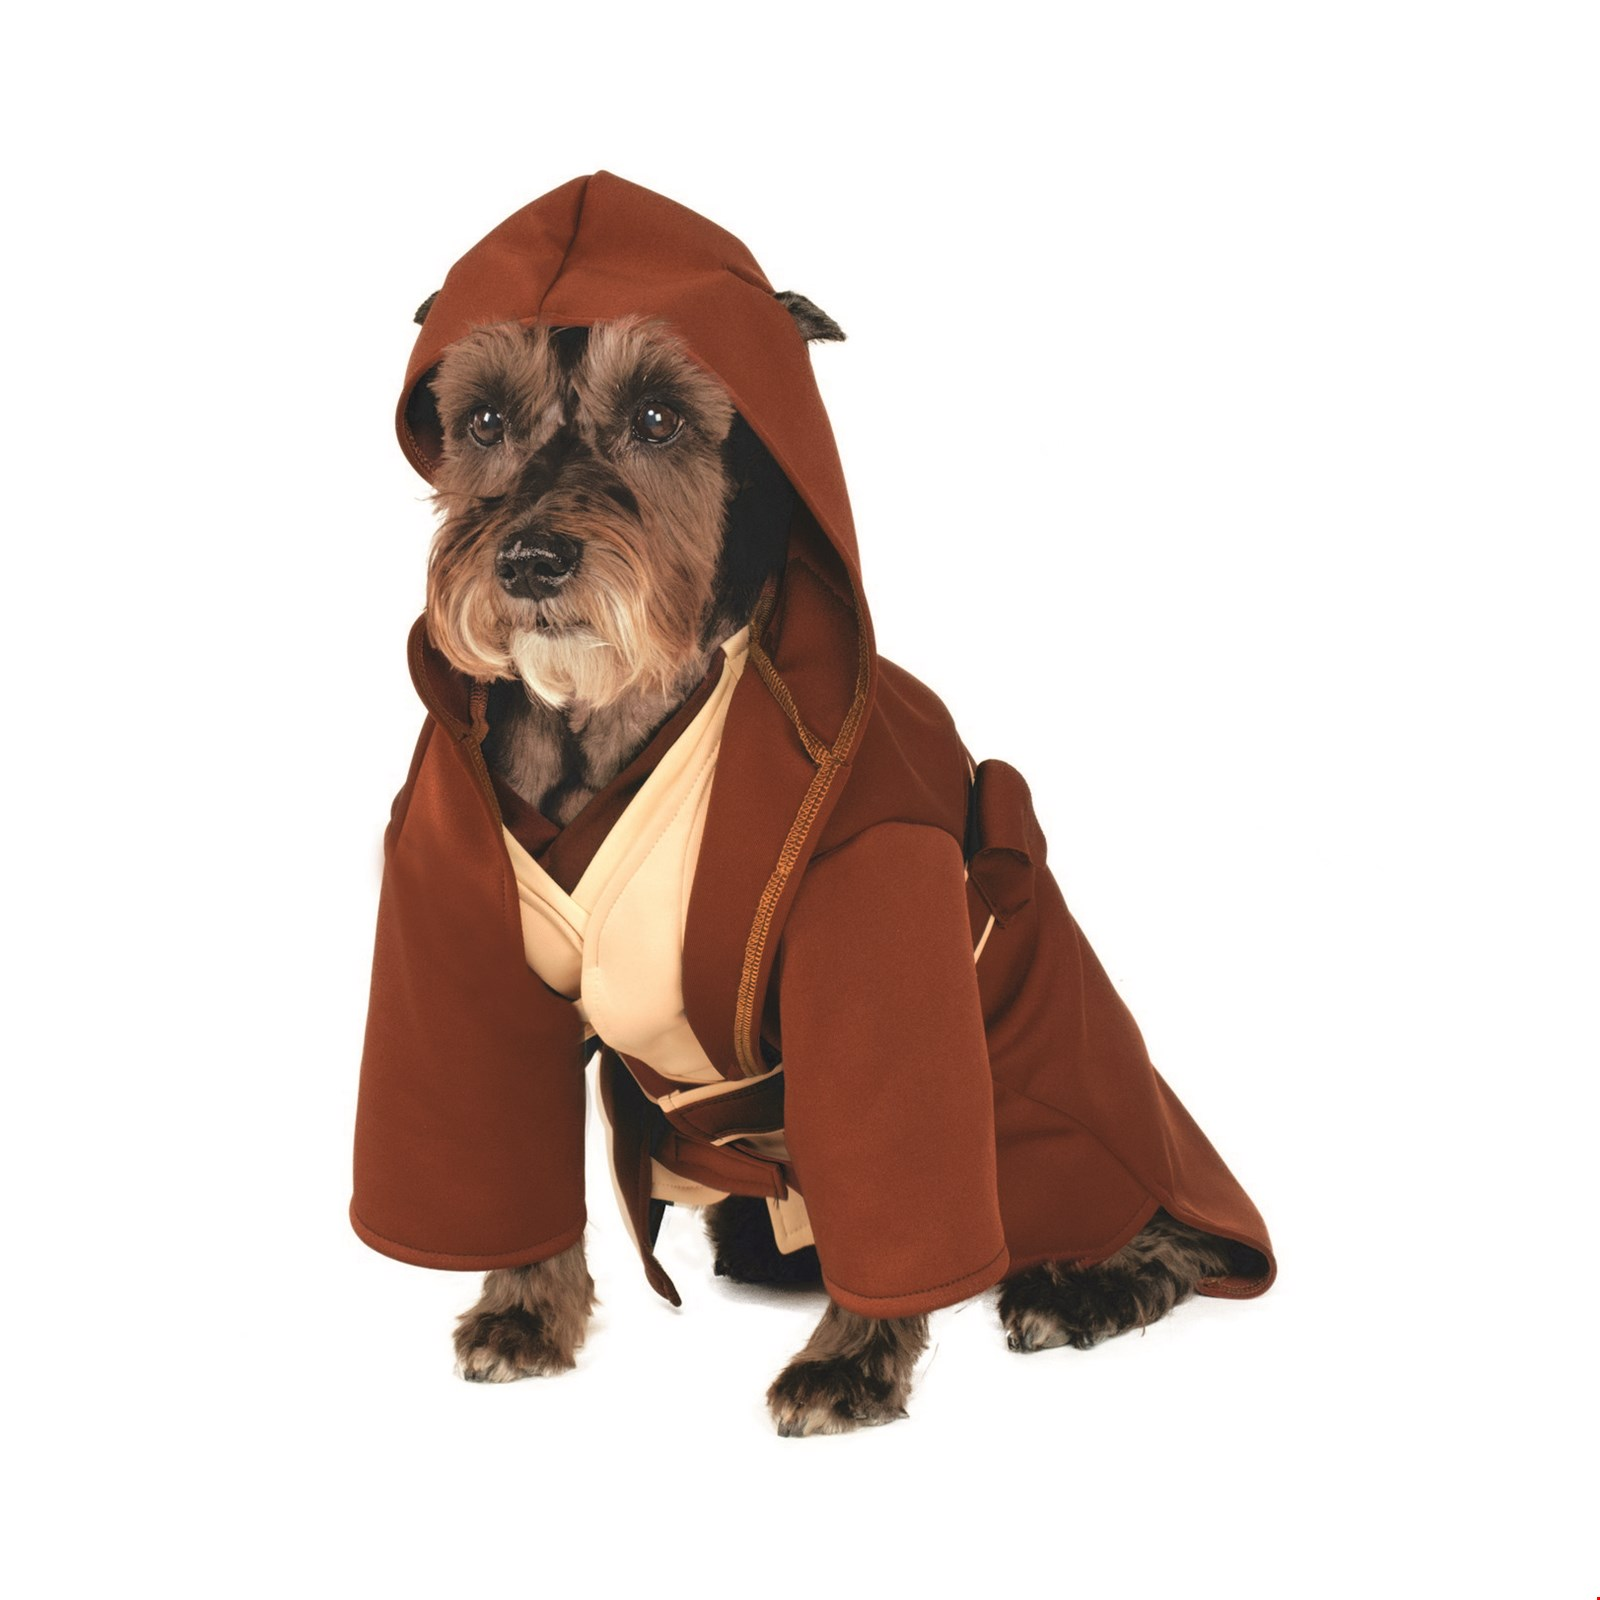 Star Wars Pet Jedi Robe Halloween Costume